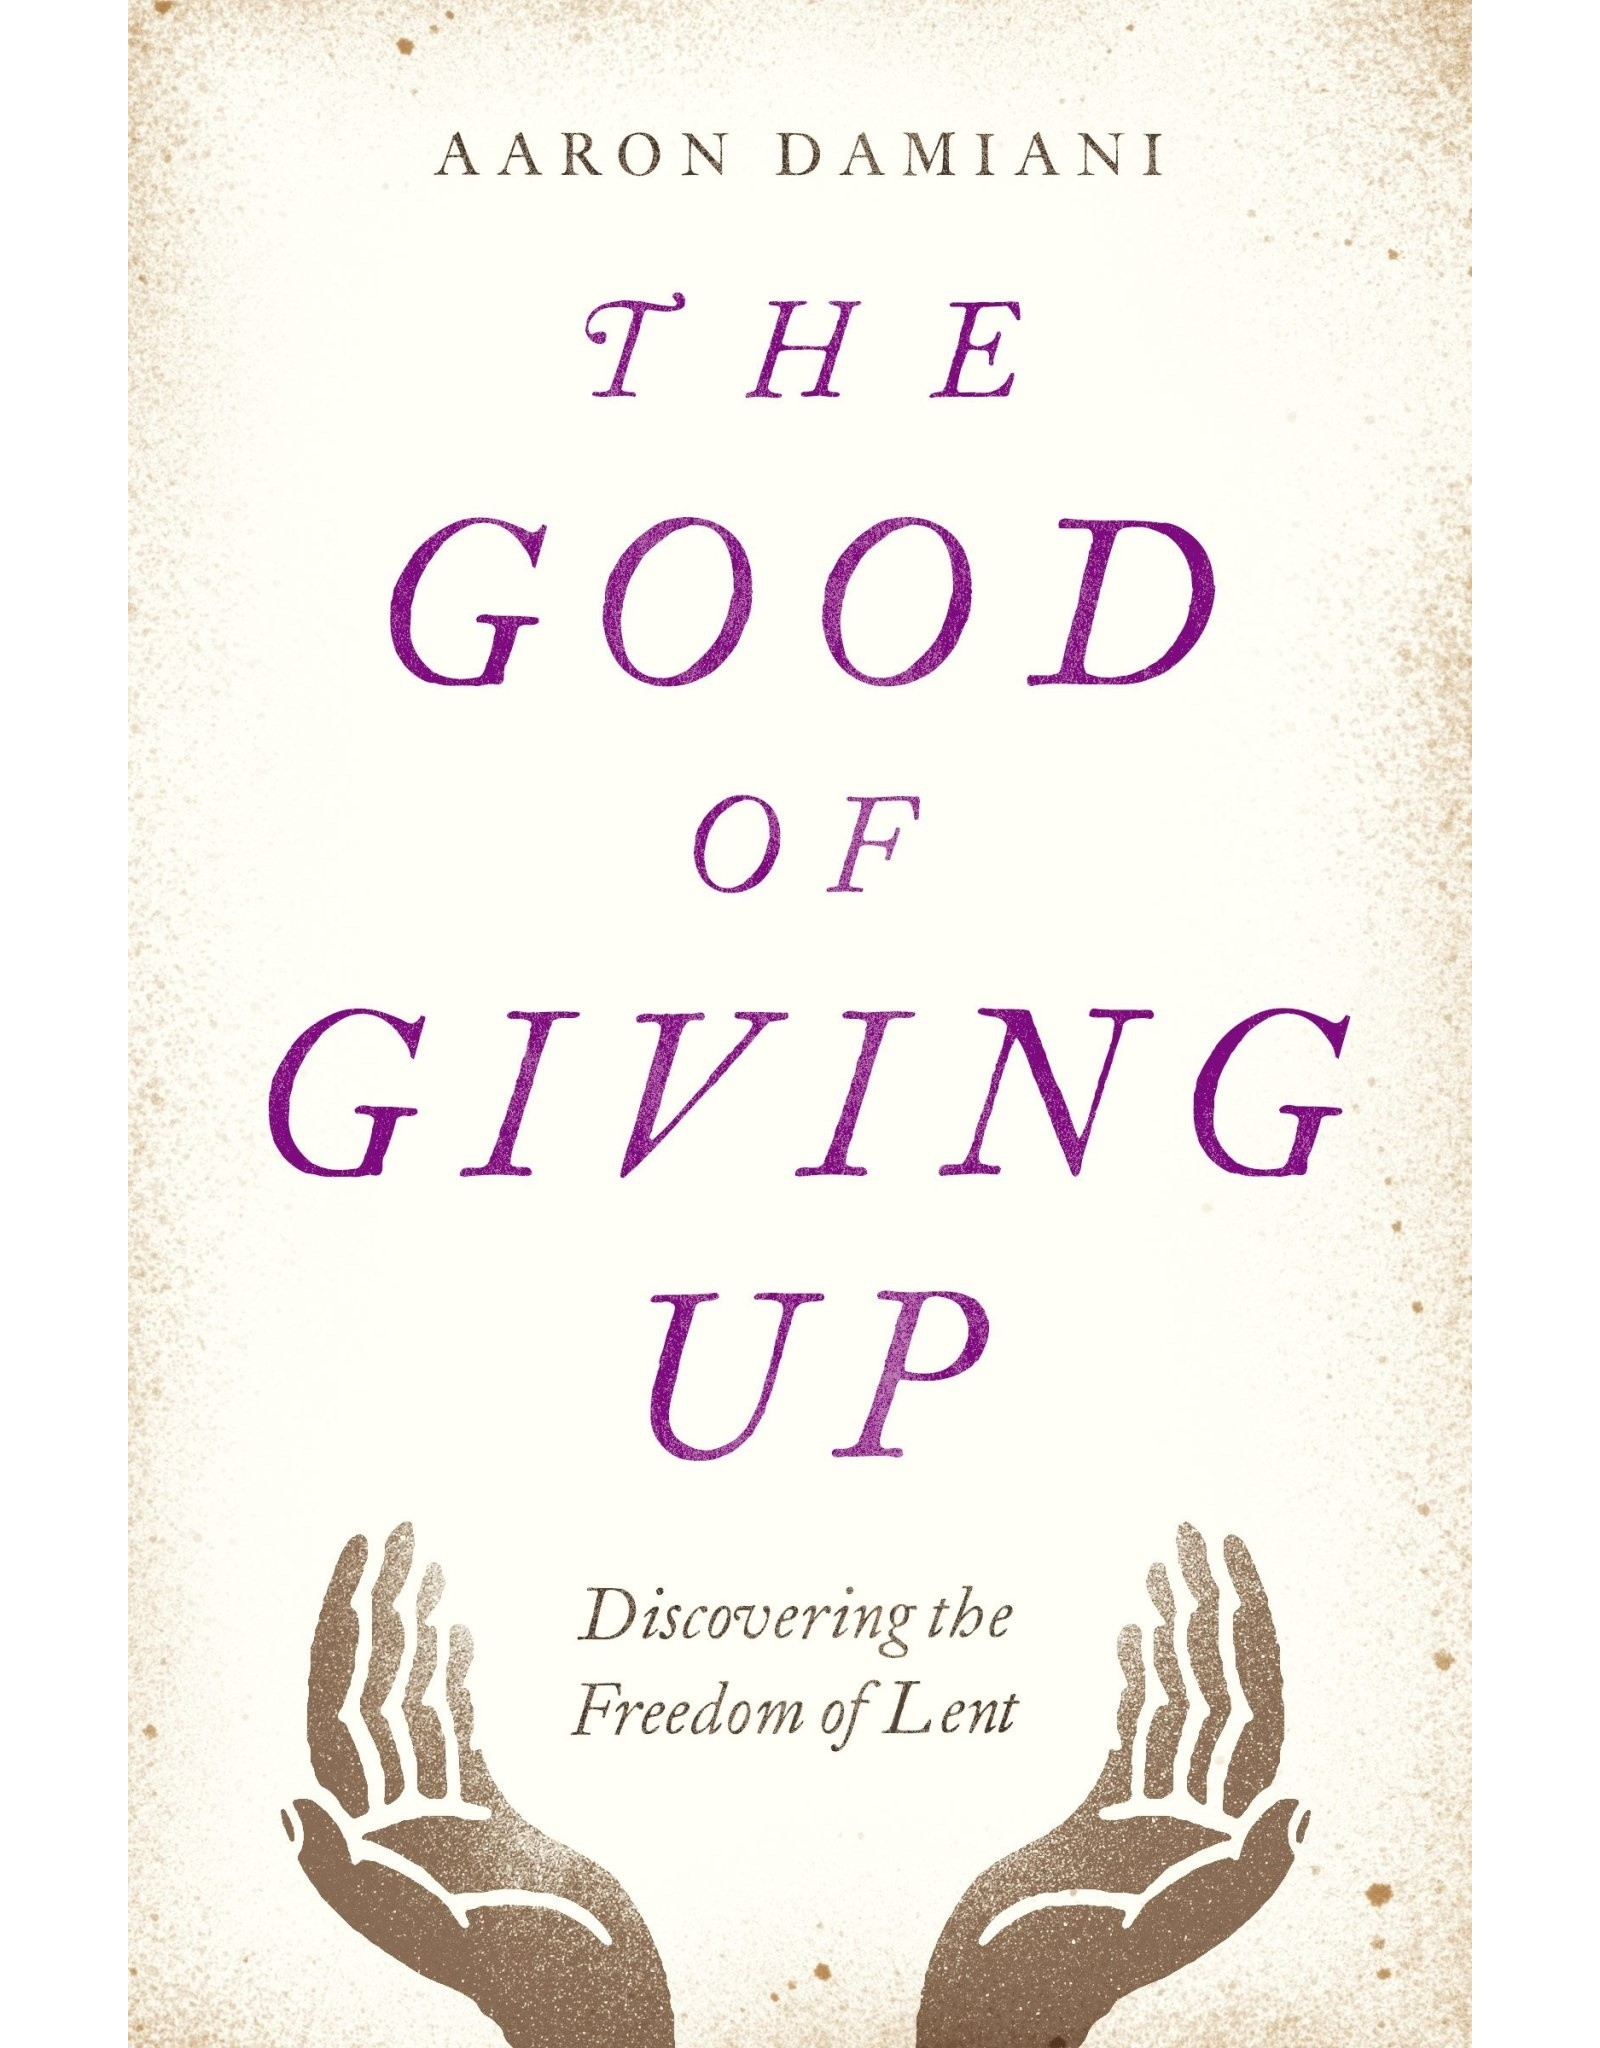 Moody Publishers REV The Good of Giving Up: Discovering the Freedom of Lent